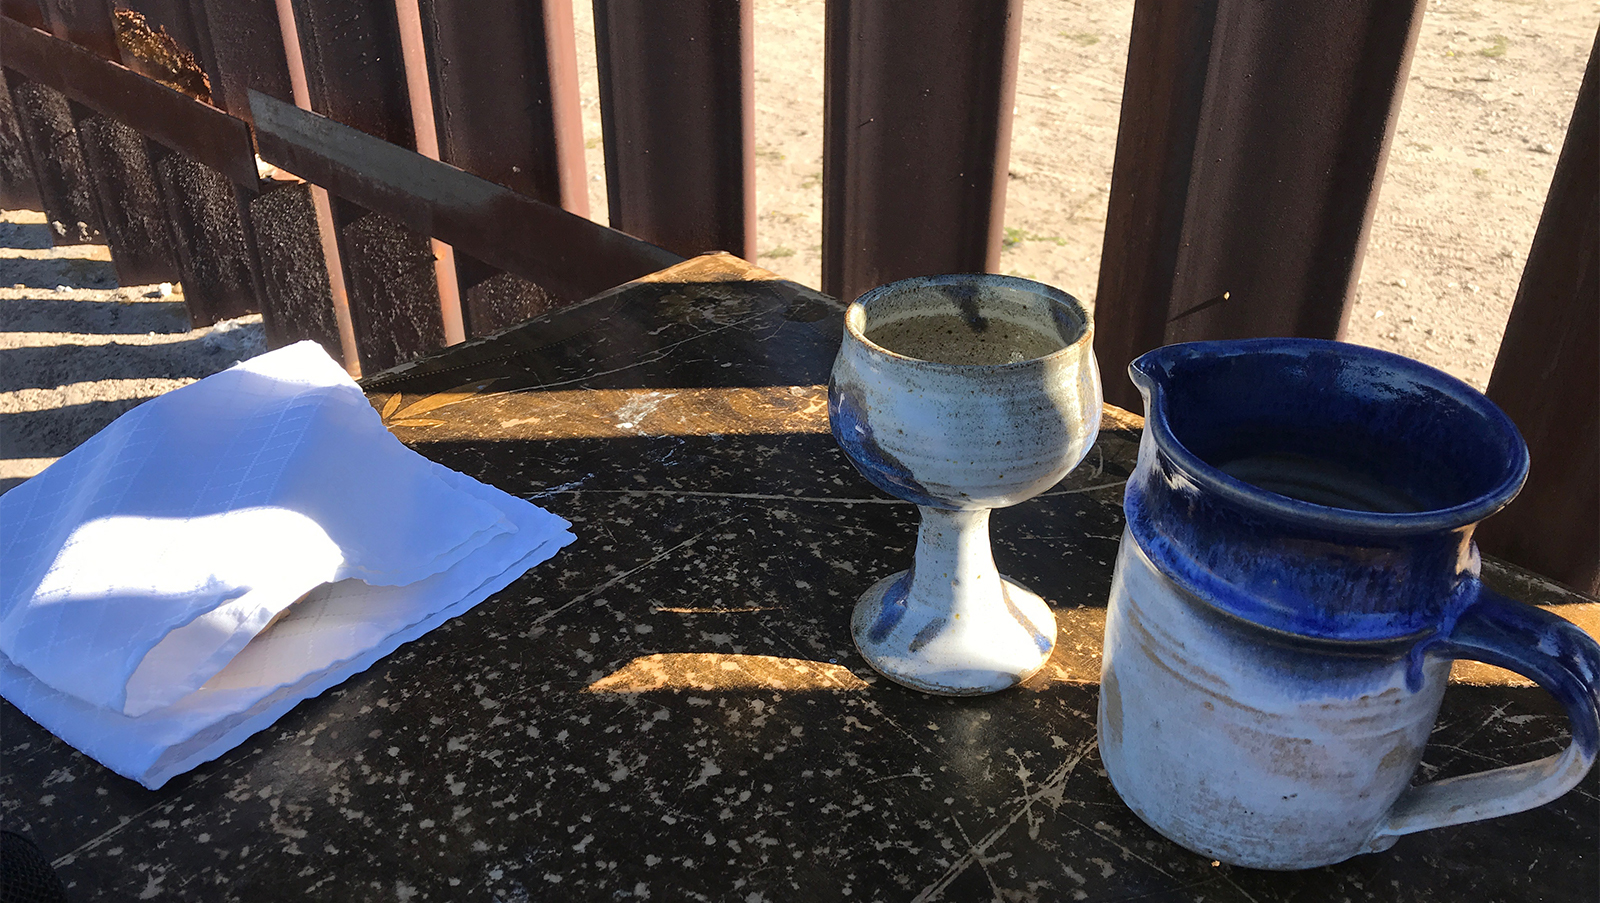 Communion Table Set Up at the Border Wall in Sunland Park, NM in November 2018.